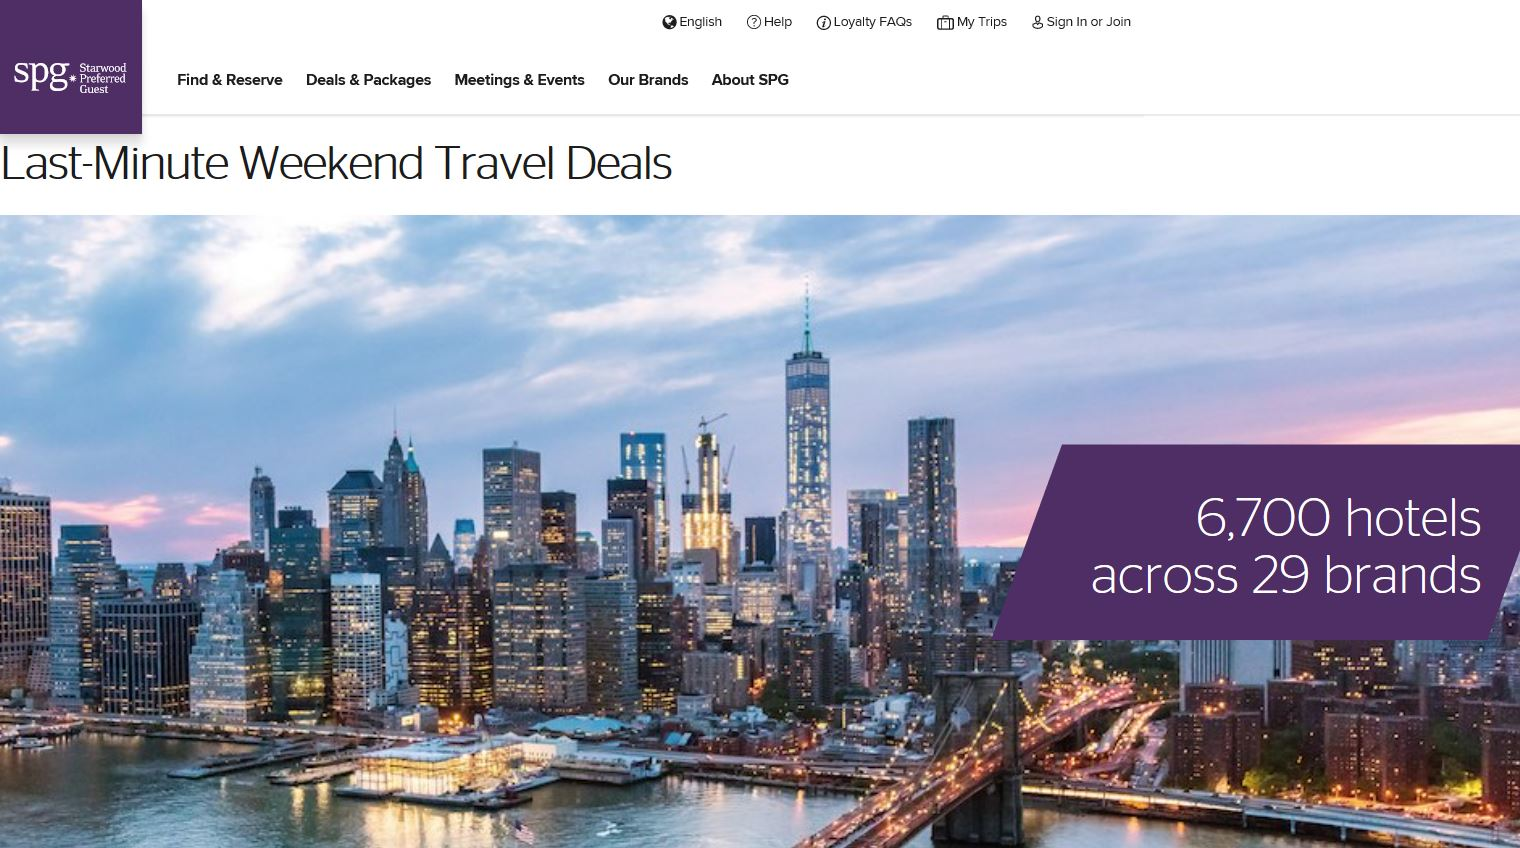 Marriott Weekend Travel Deals